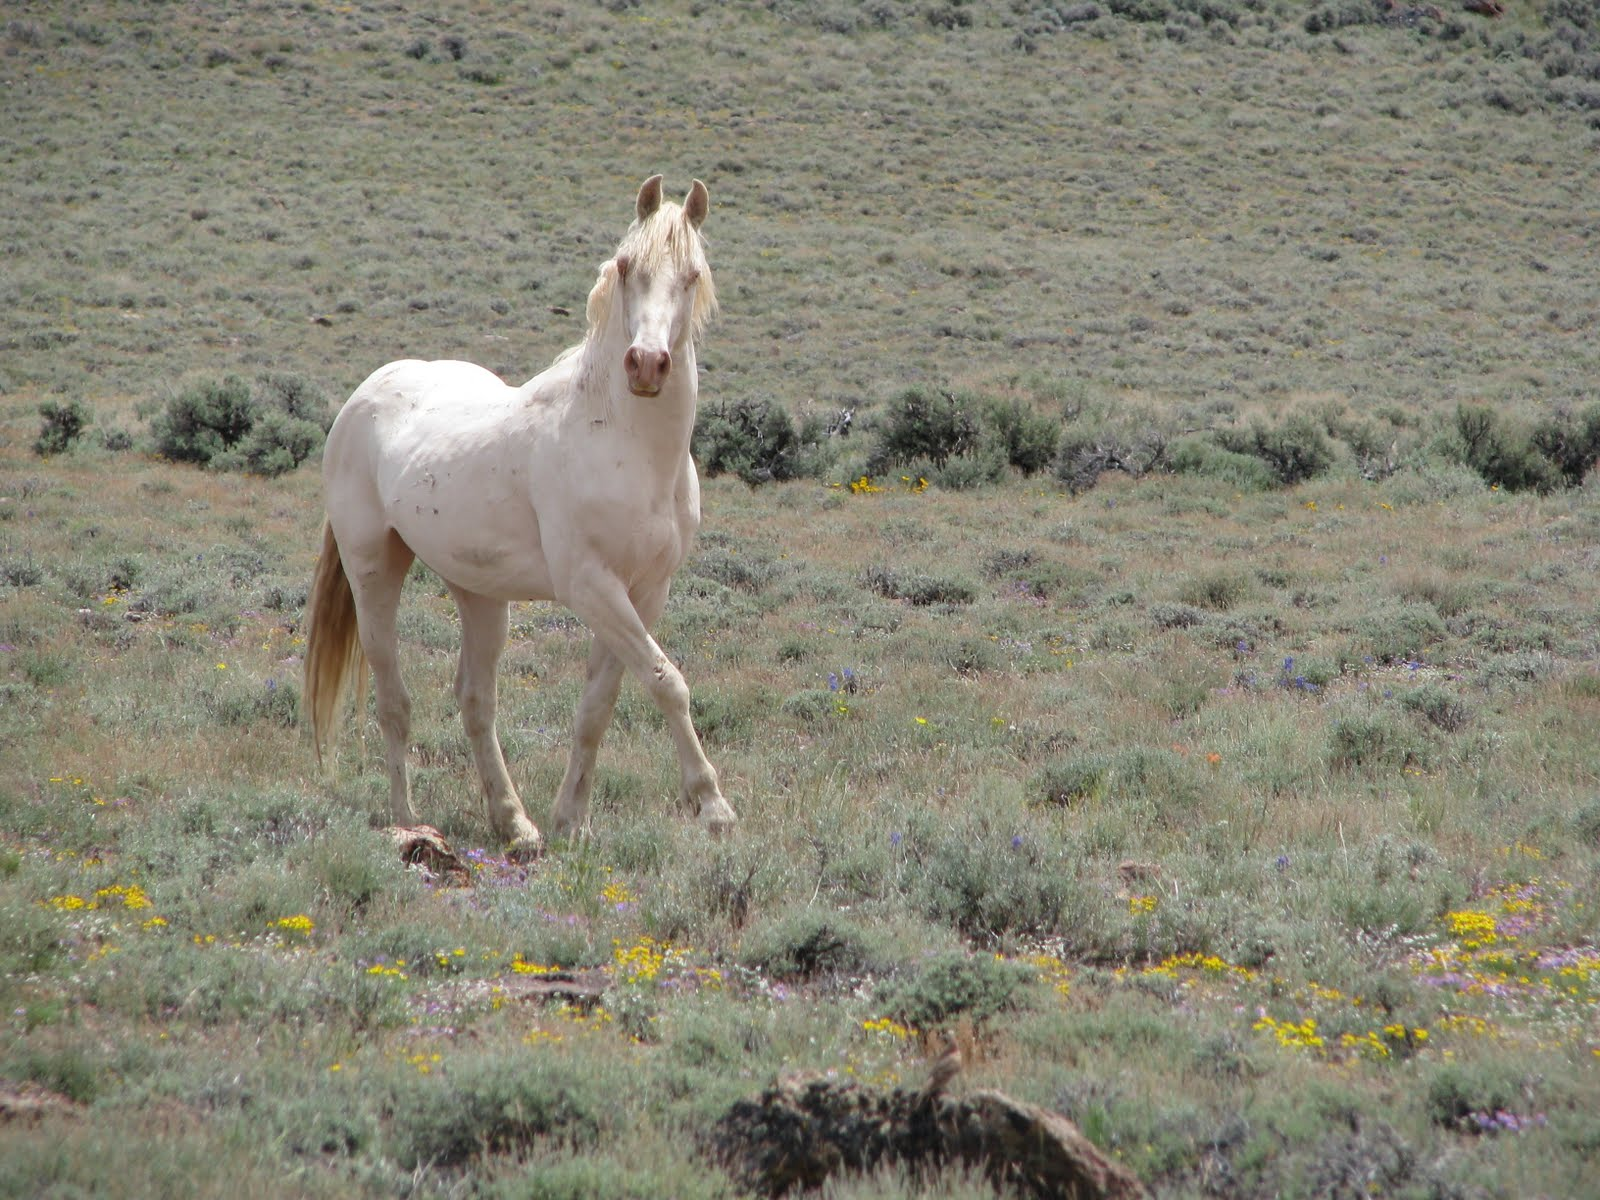 Horses in the little colorado herd management area - Wild Horse From The Calico Herd Management Area Courtesy Of Blm 2004